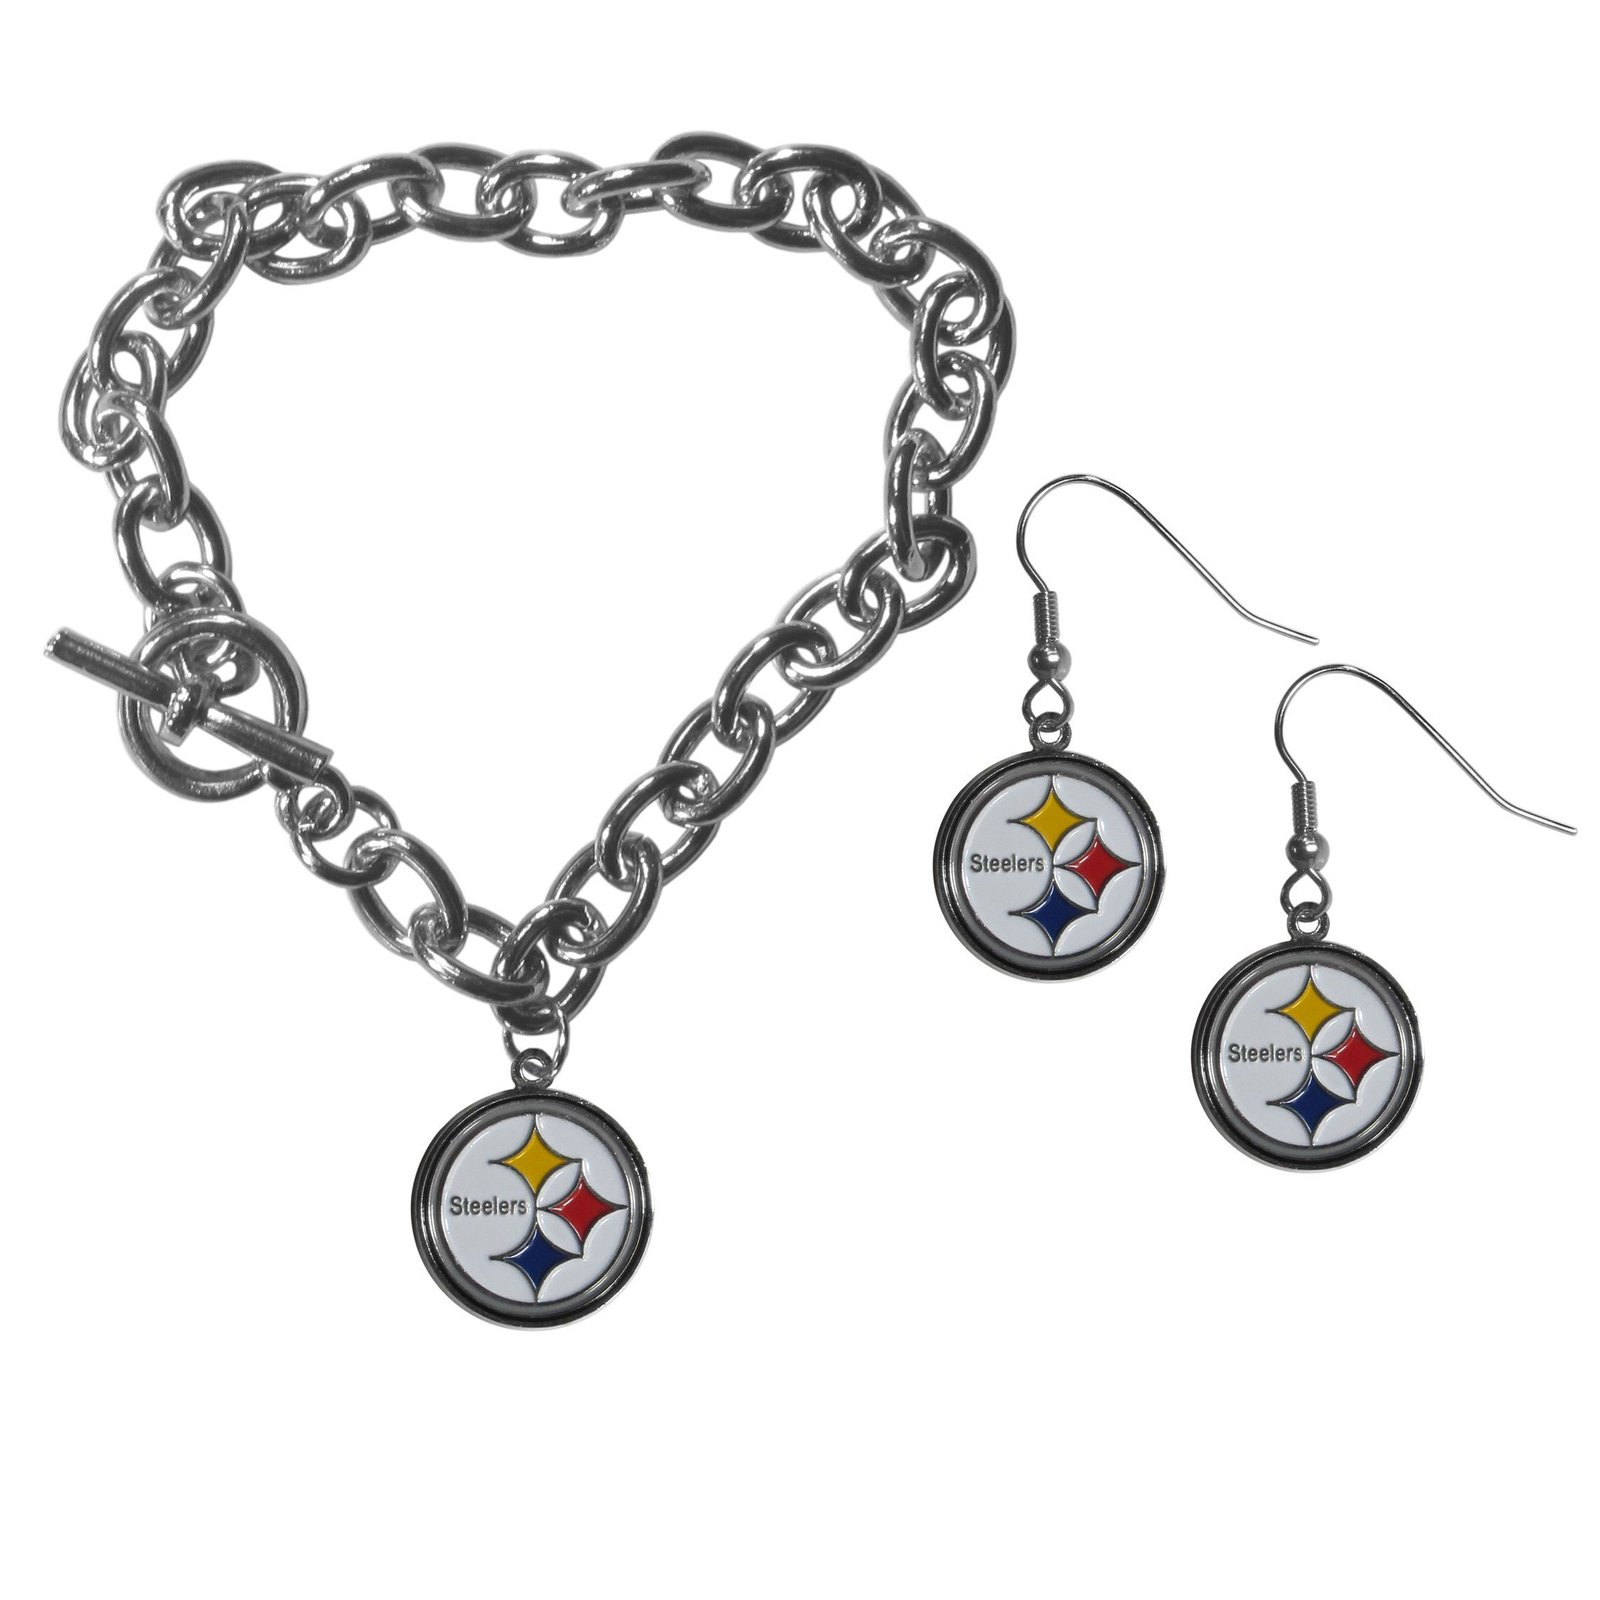 Pittsburgh steelers chain bracelet and dangle earring set default title jademoghul 3656869019752